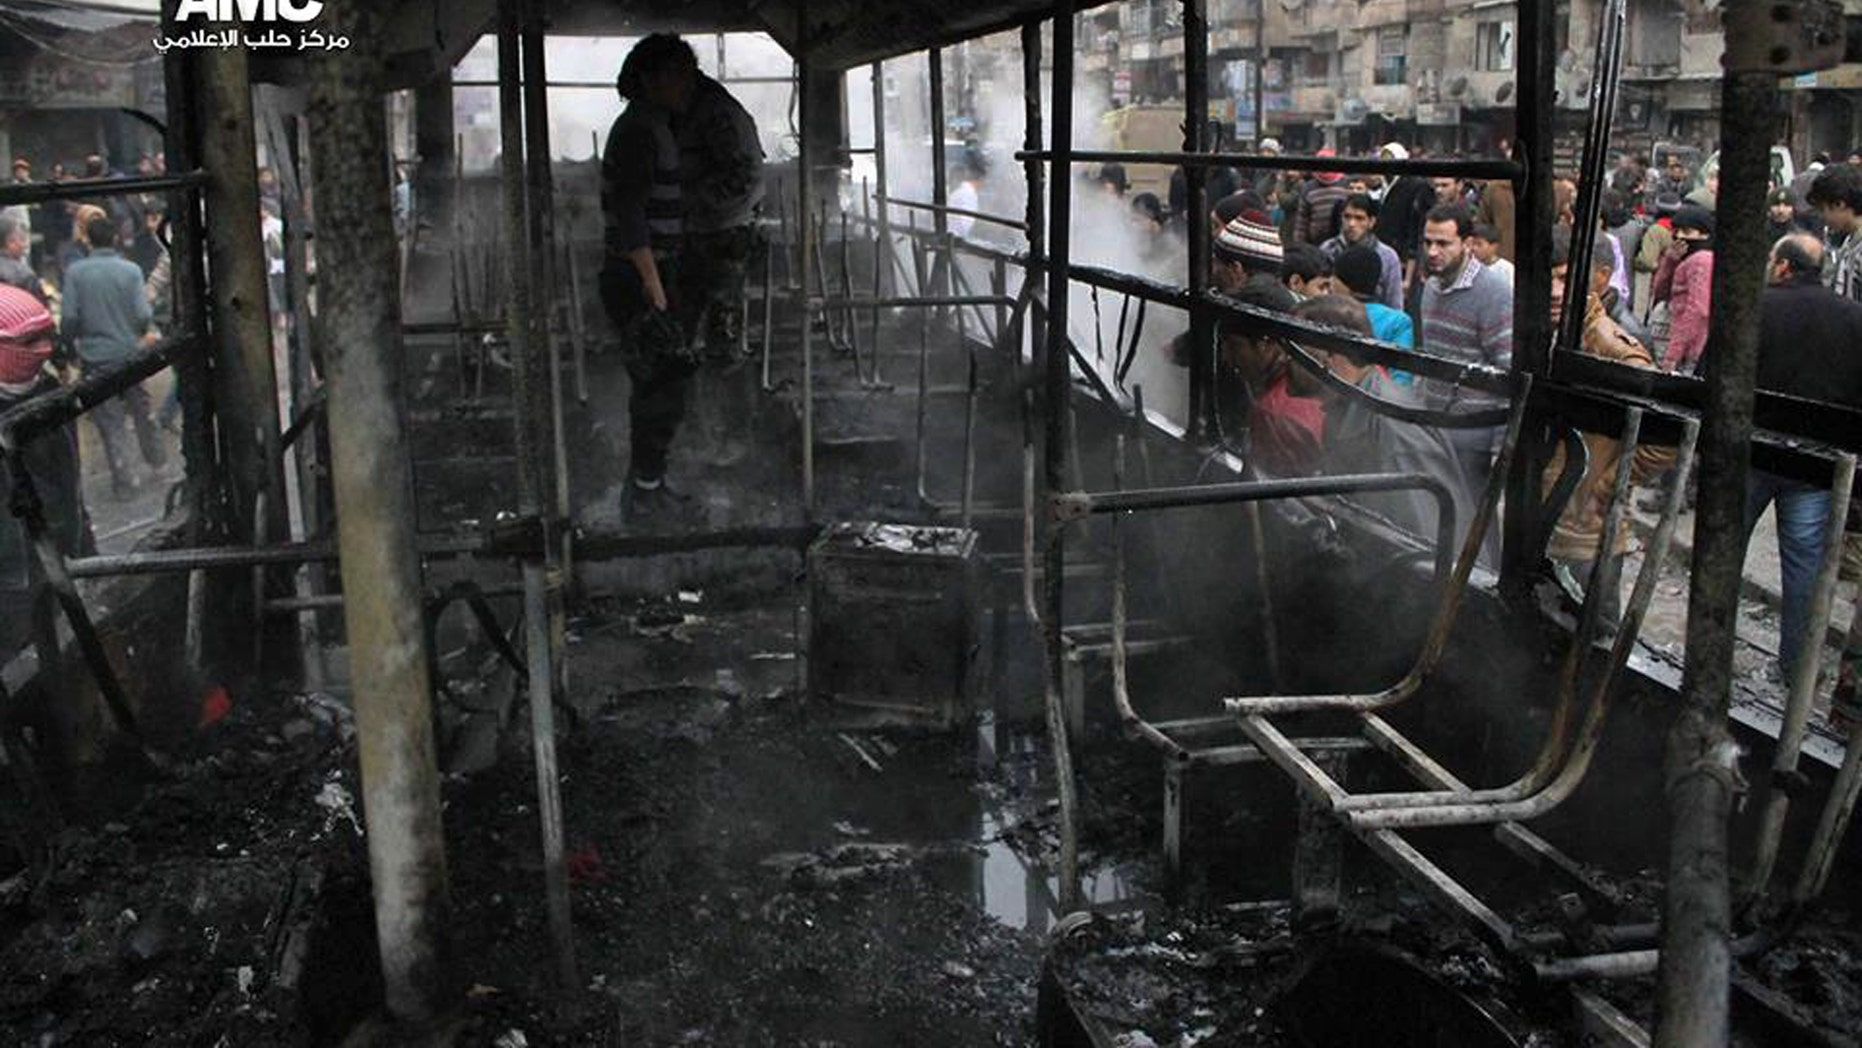 This citizen journalism image provided by Aleppo Media Center AMC which has been authenticated based on its contents and other AP reporting, shows Syrians inspecting a burnt bus after a missile fired by Syrian government aircraft hit the vehicle in the rebel-held neighborhood of al-Bab in Aleppo, Syria, Tuesday, Dec. 31, 2013. The bus was full of people when it was struck, setting it on fire and killing several people, activists said. (AP Photo/Aleppo Media Center AMC)